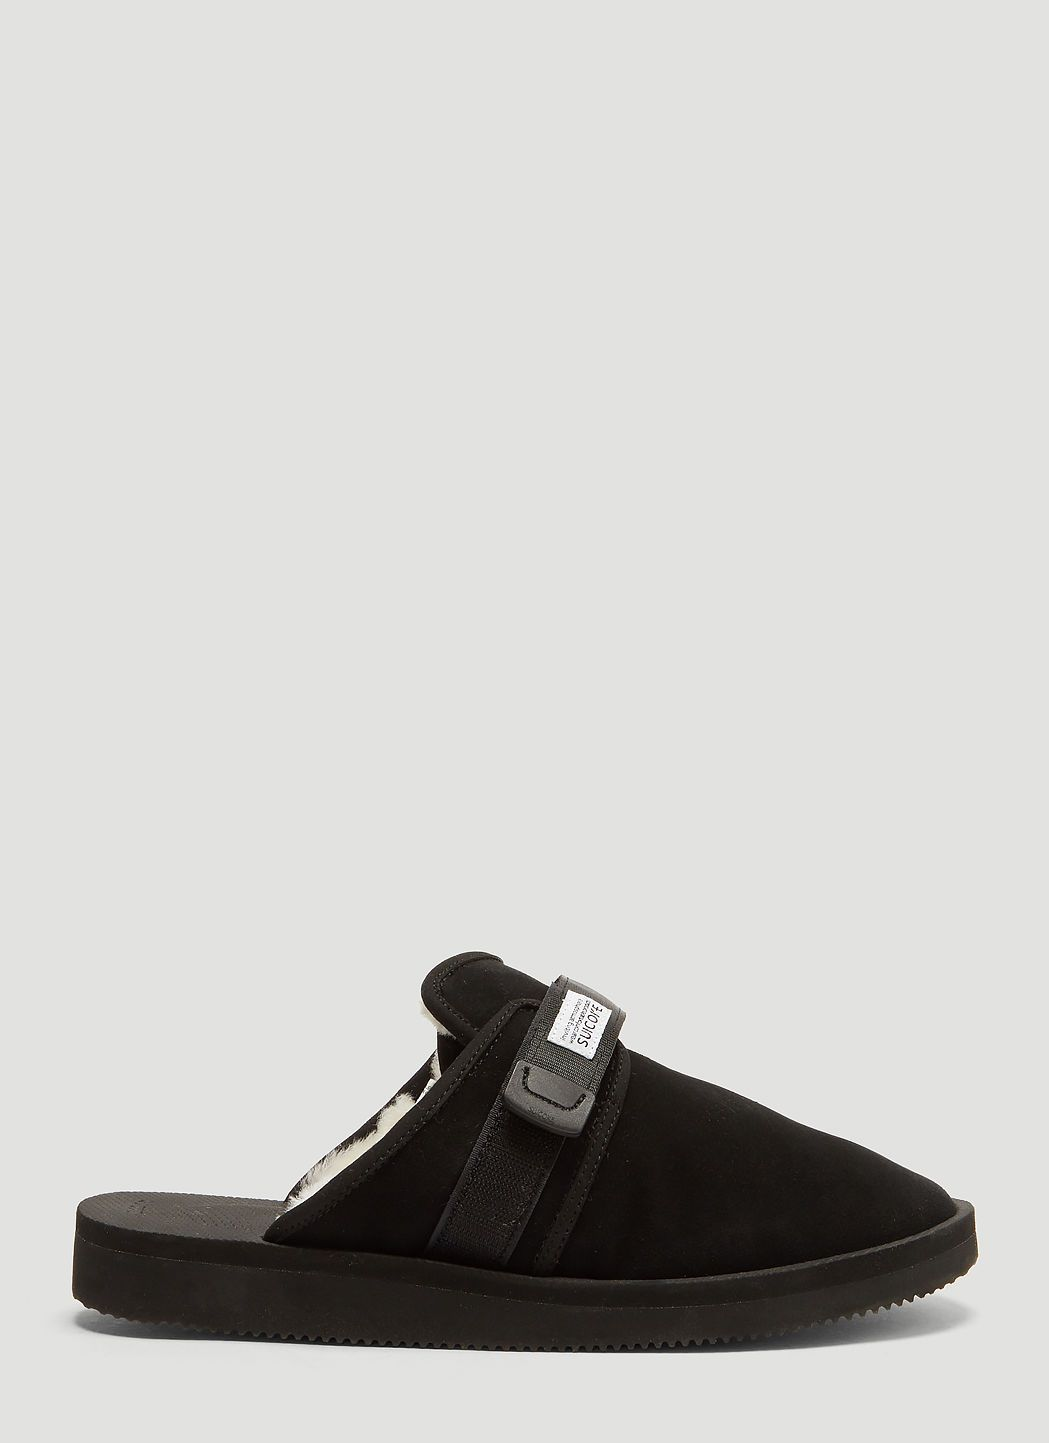 c2876e1bd388 SUICOKE Zavo Mab Suede Sandals in Black.  suicoke  shoes